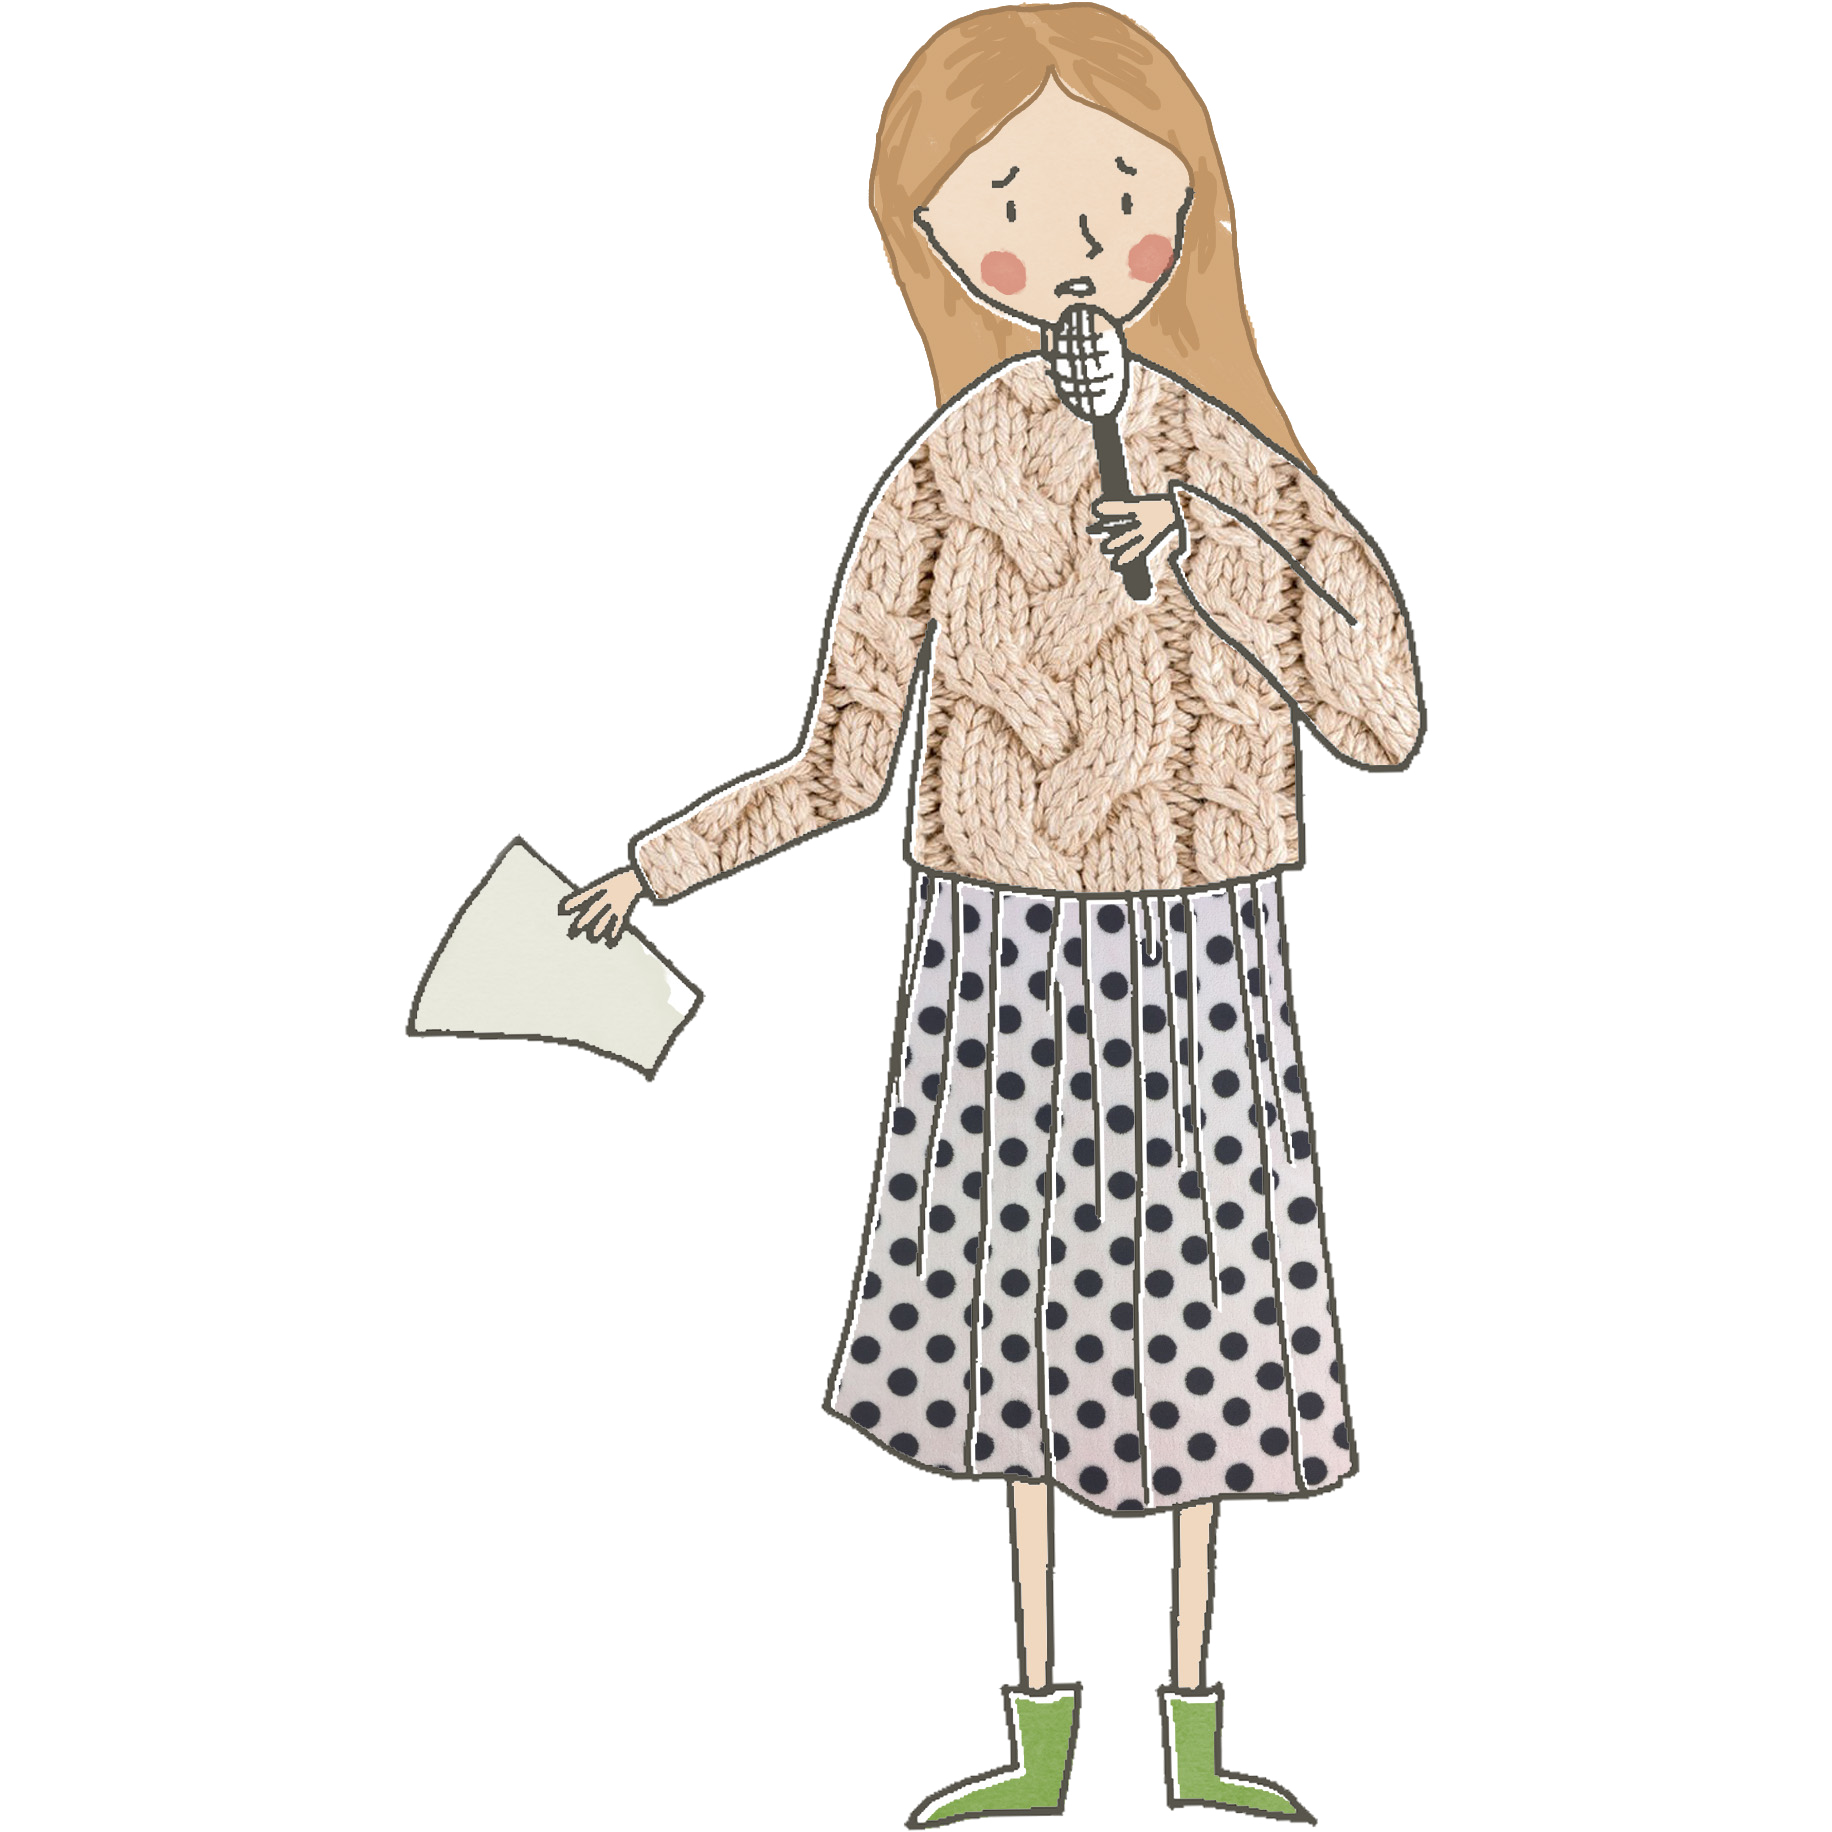 illustration of a woman in a knitted jumper, skirt and wellies holding a microphone and speaking. Image © Rebecca Frost.